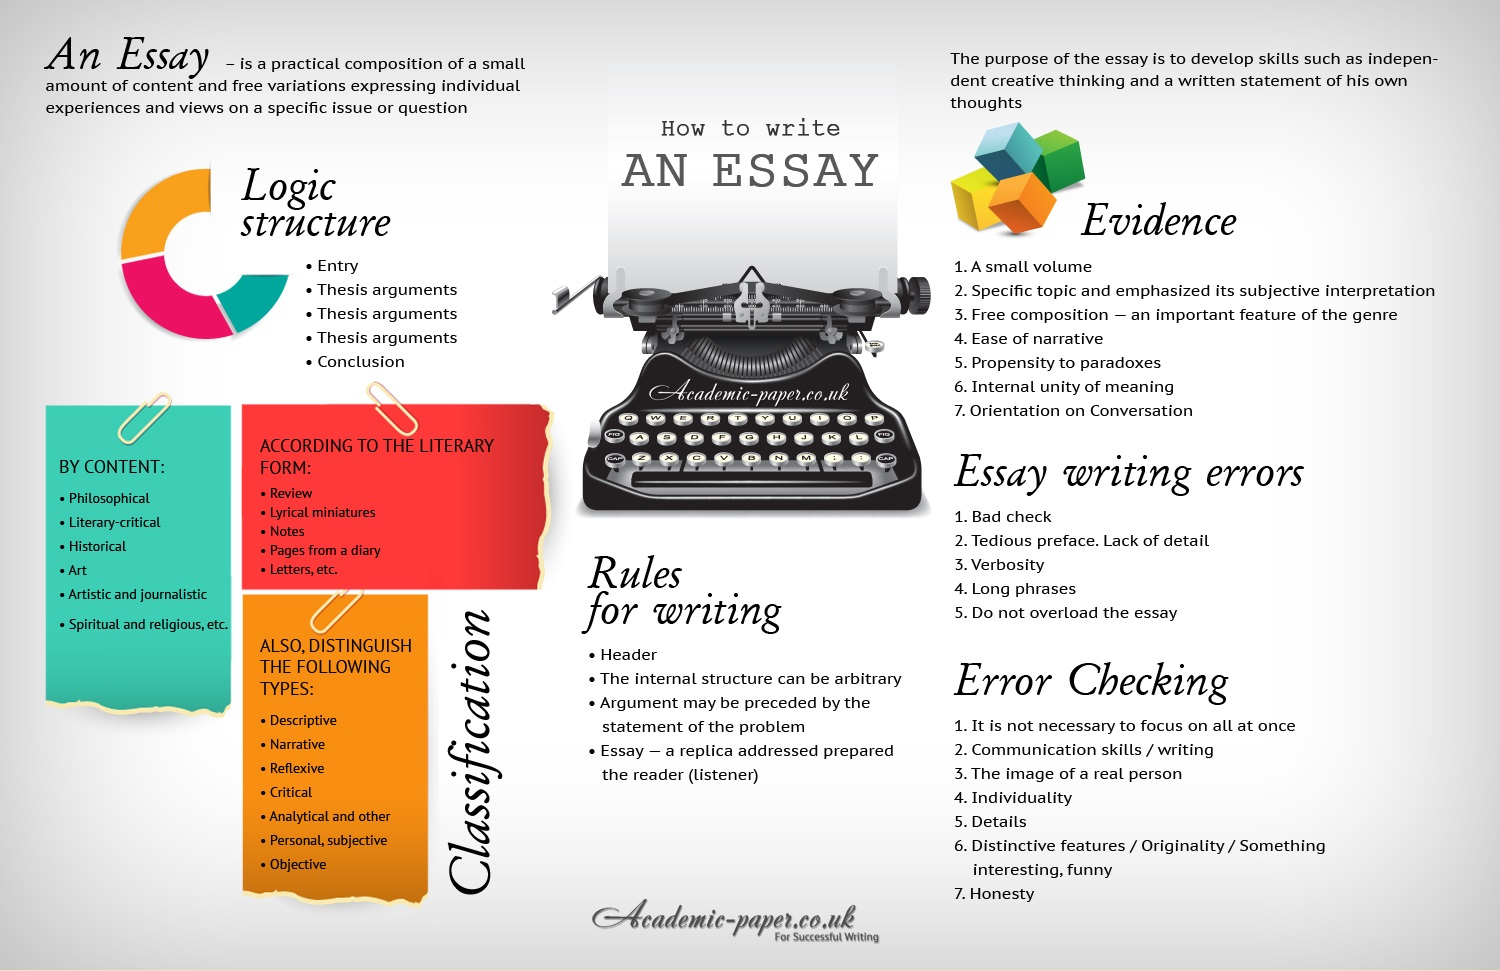 006 Essay Example Steps To Writing Stunning An 4th Grade Middle School Conclusion Full